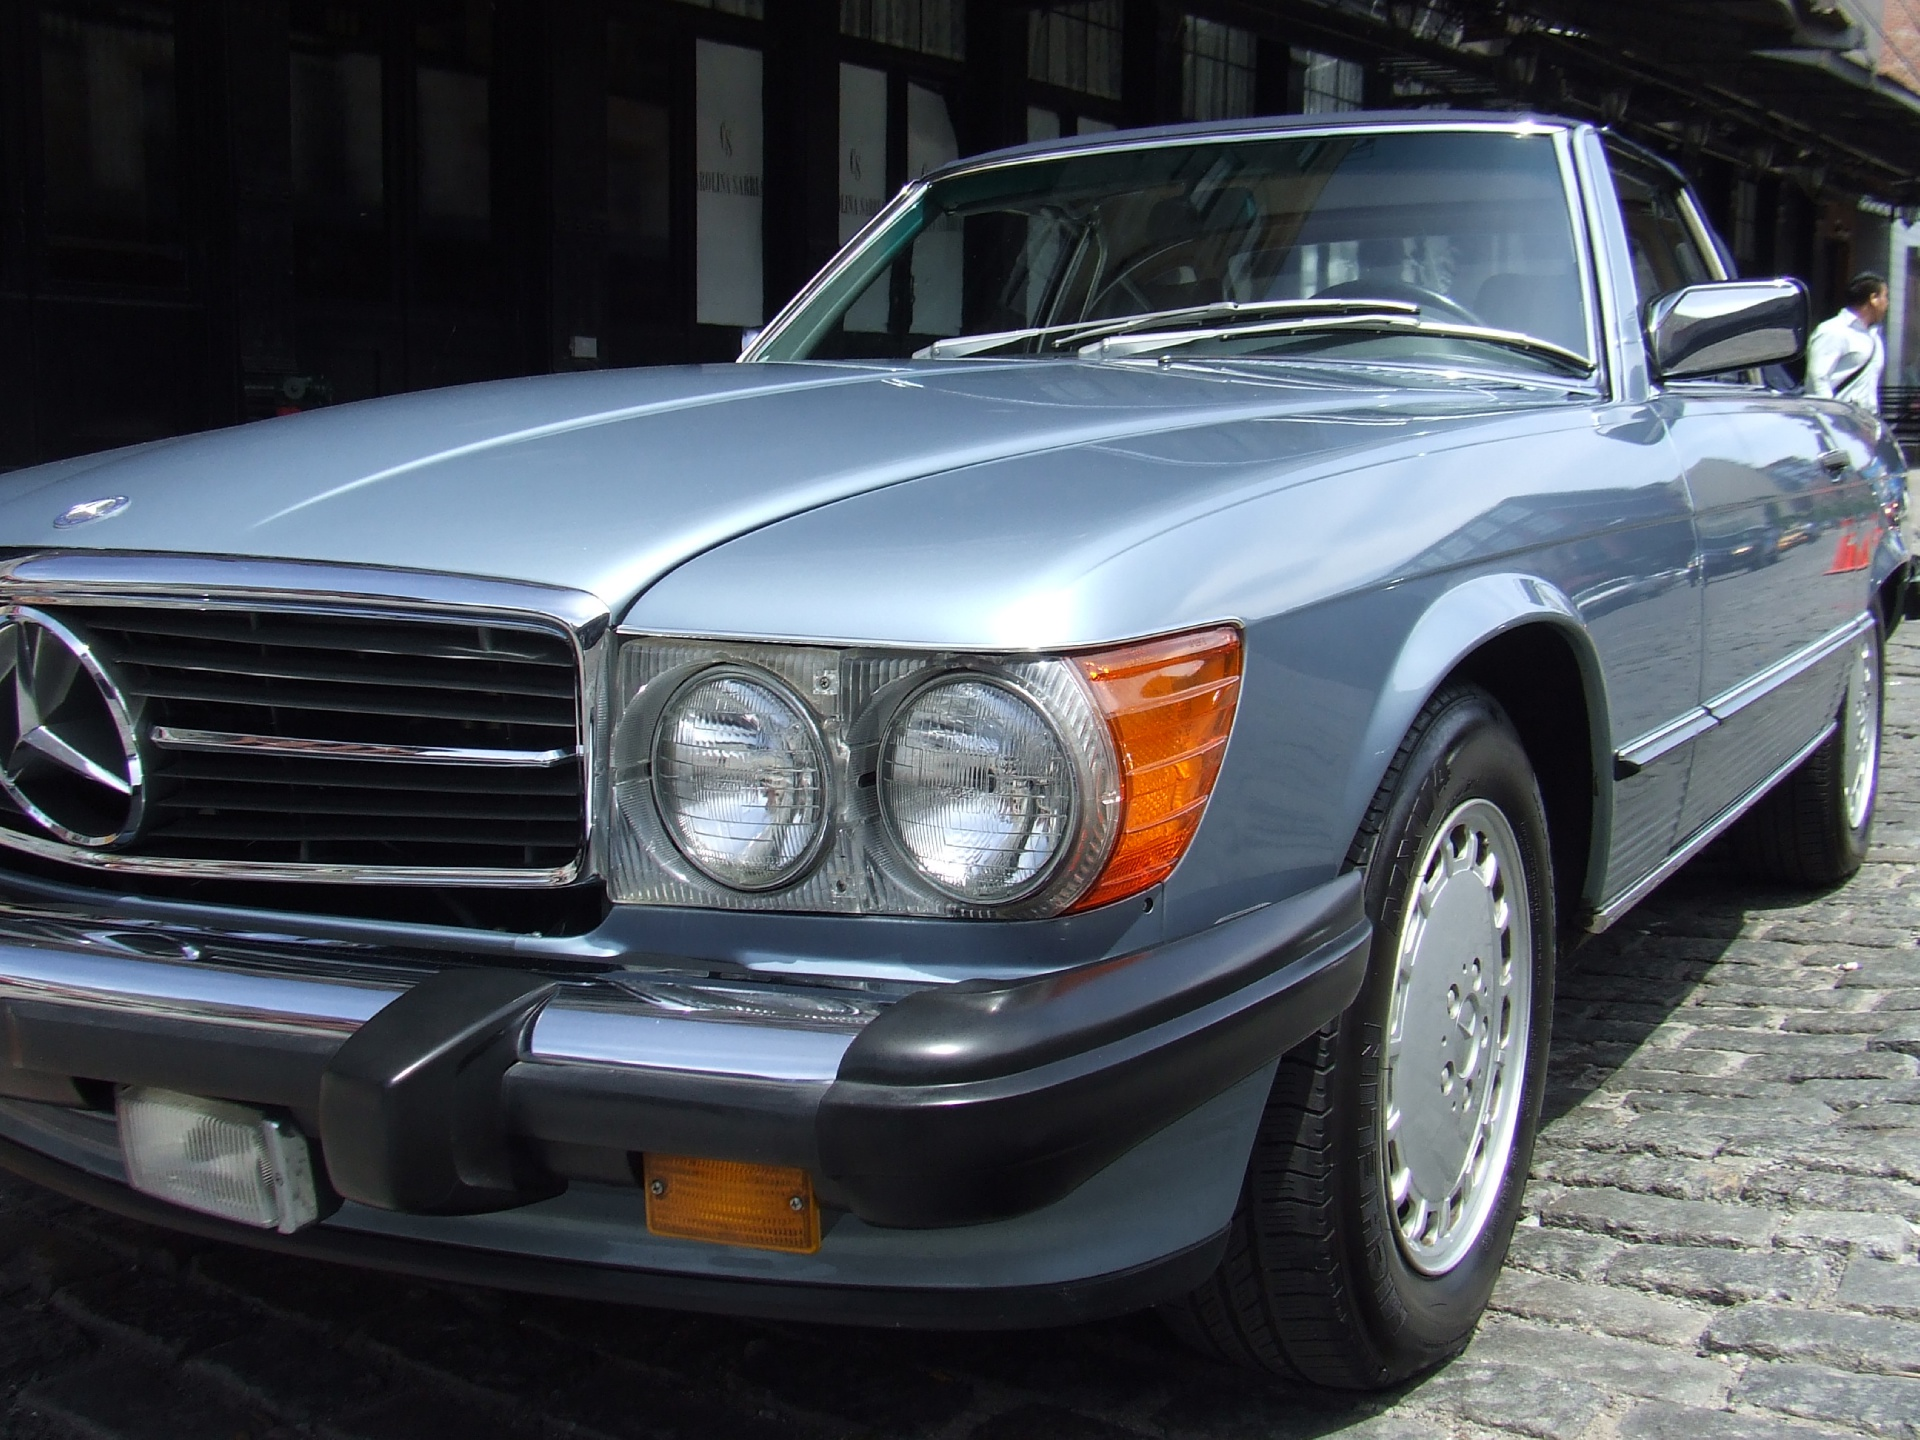 1986 Mercedes-Benz 560sl Stock # C17 for sale near New ...